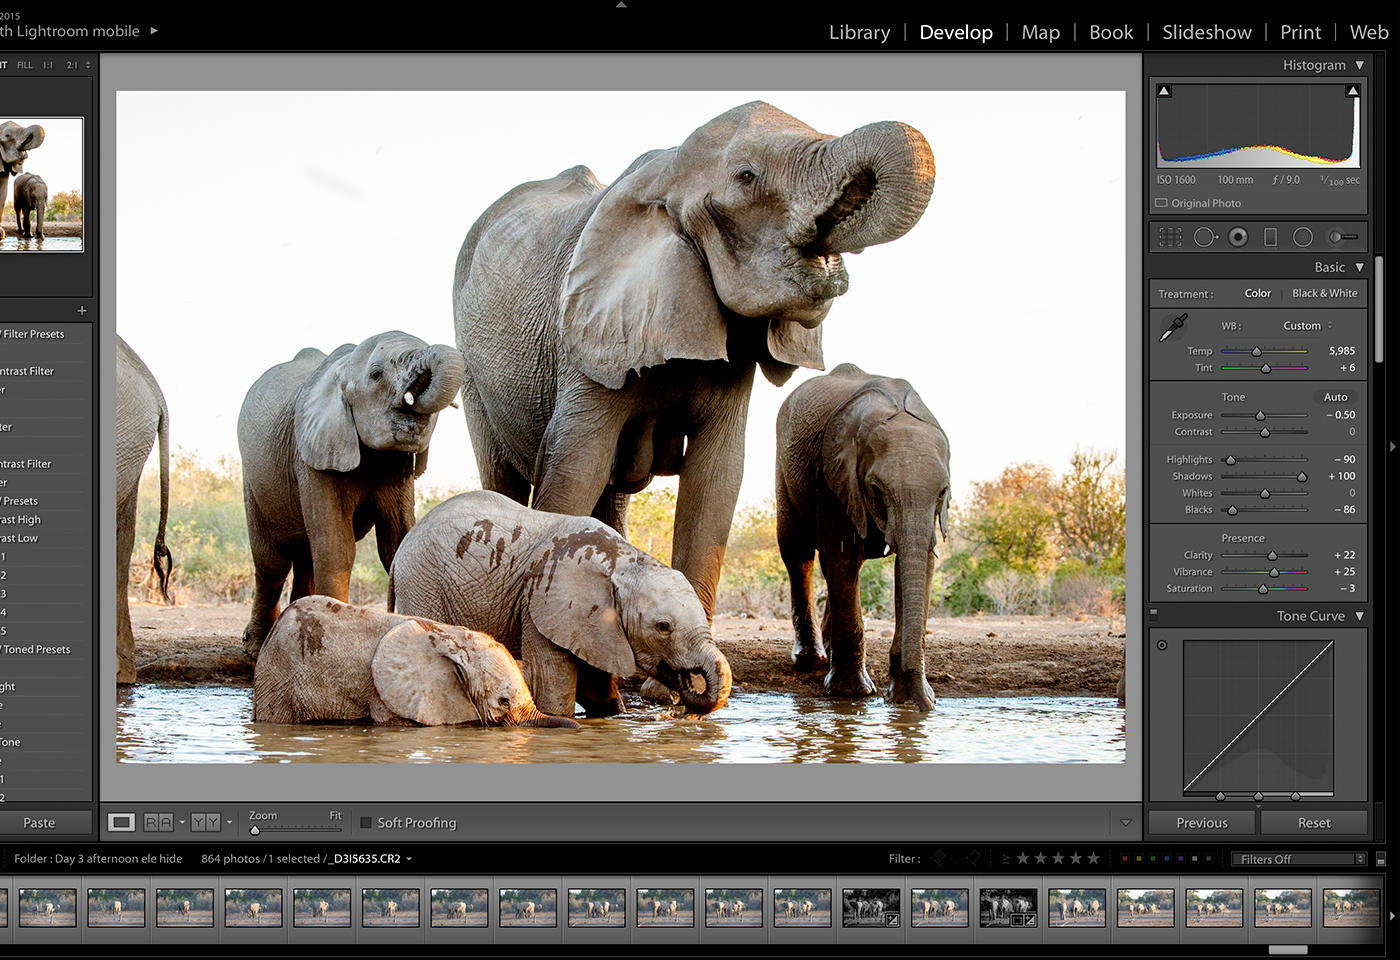 Editing using Adobe Lightroom